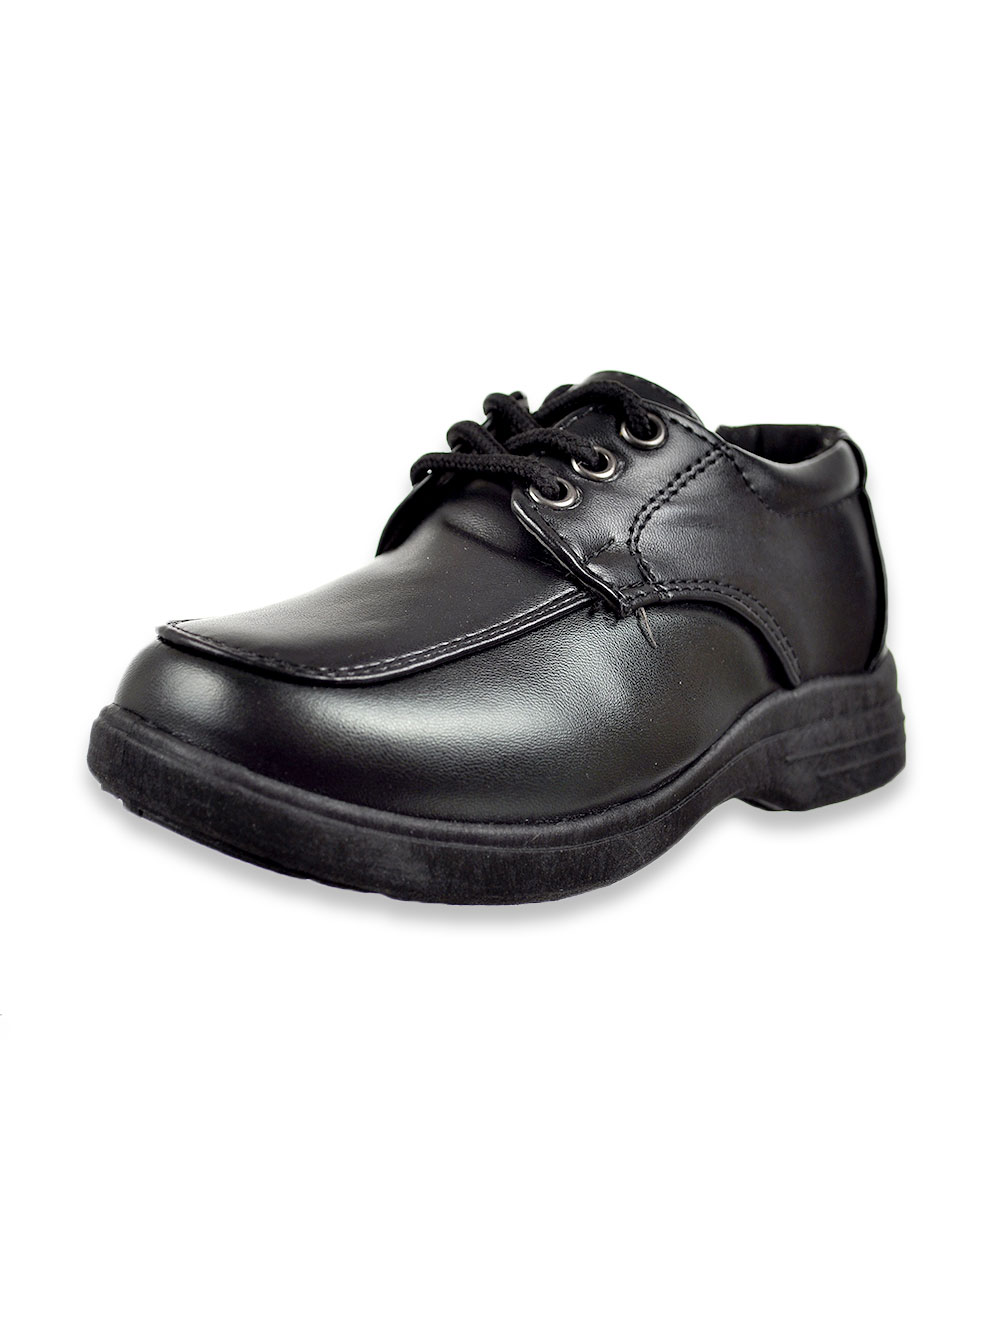 Boys' Lace-Up School Shoes